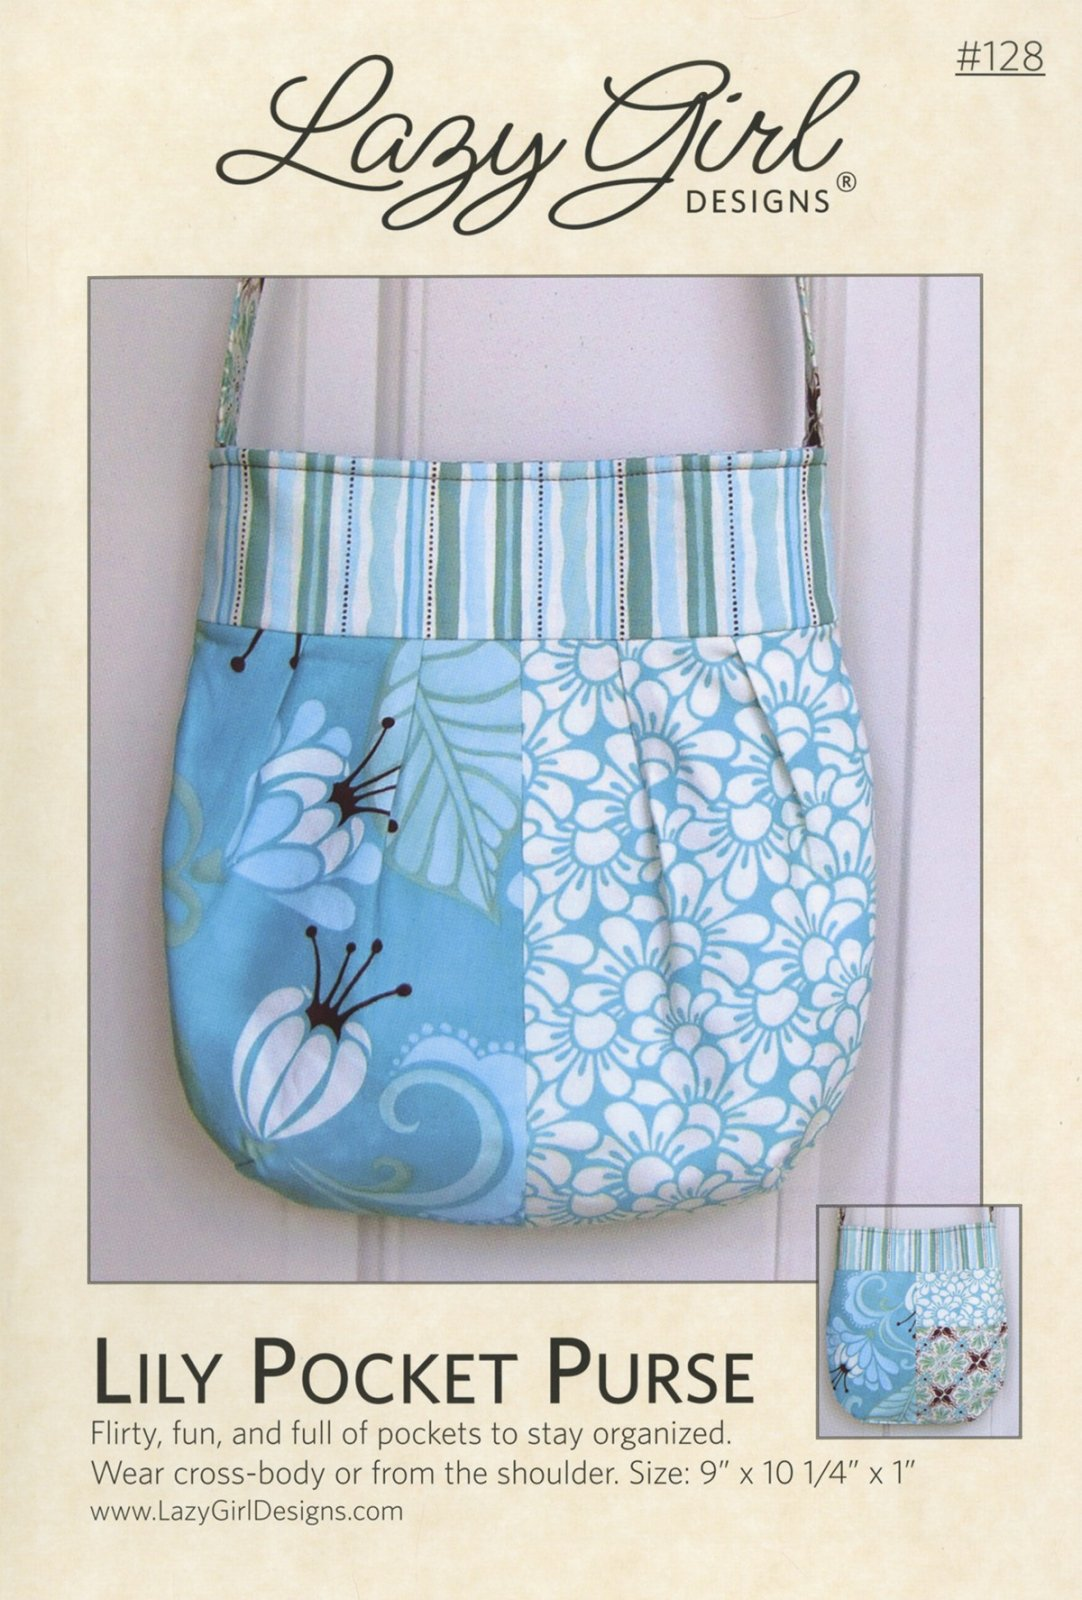 Lily Pocket Purse 9in x 10-1/4in x 1in